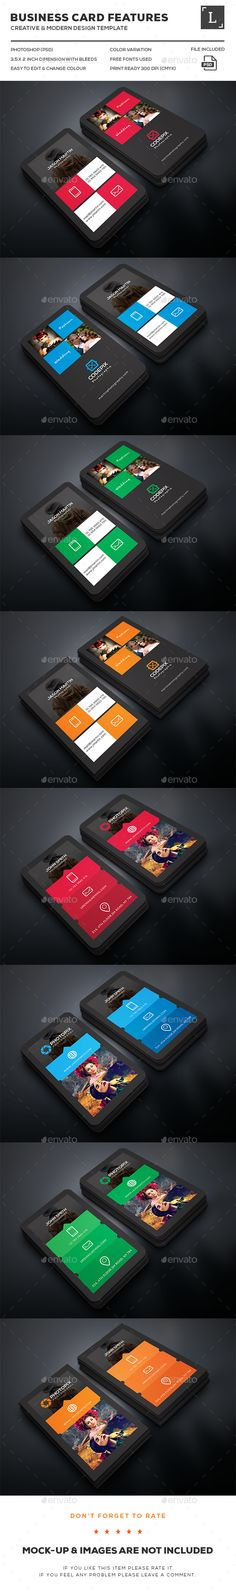 Photography Business Cards Bundle Templates PSD. Download here: http://graphicriver.net/item/photography-business-cards-bundle/16268808?ref=ksioks